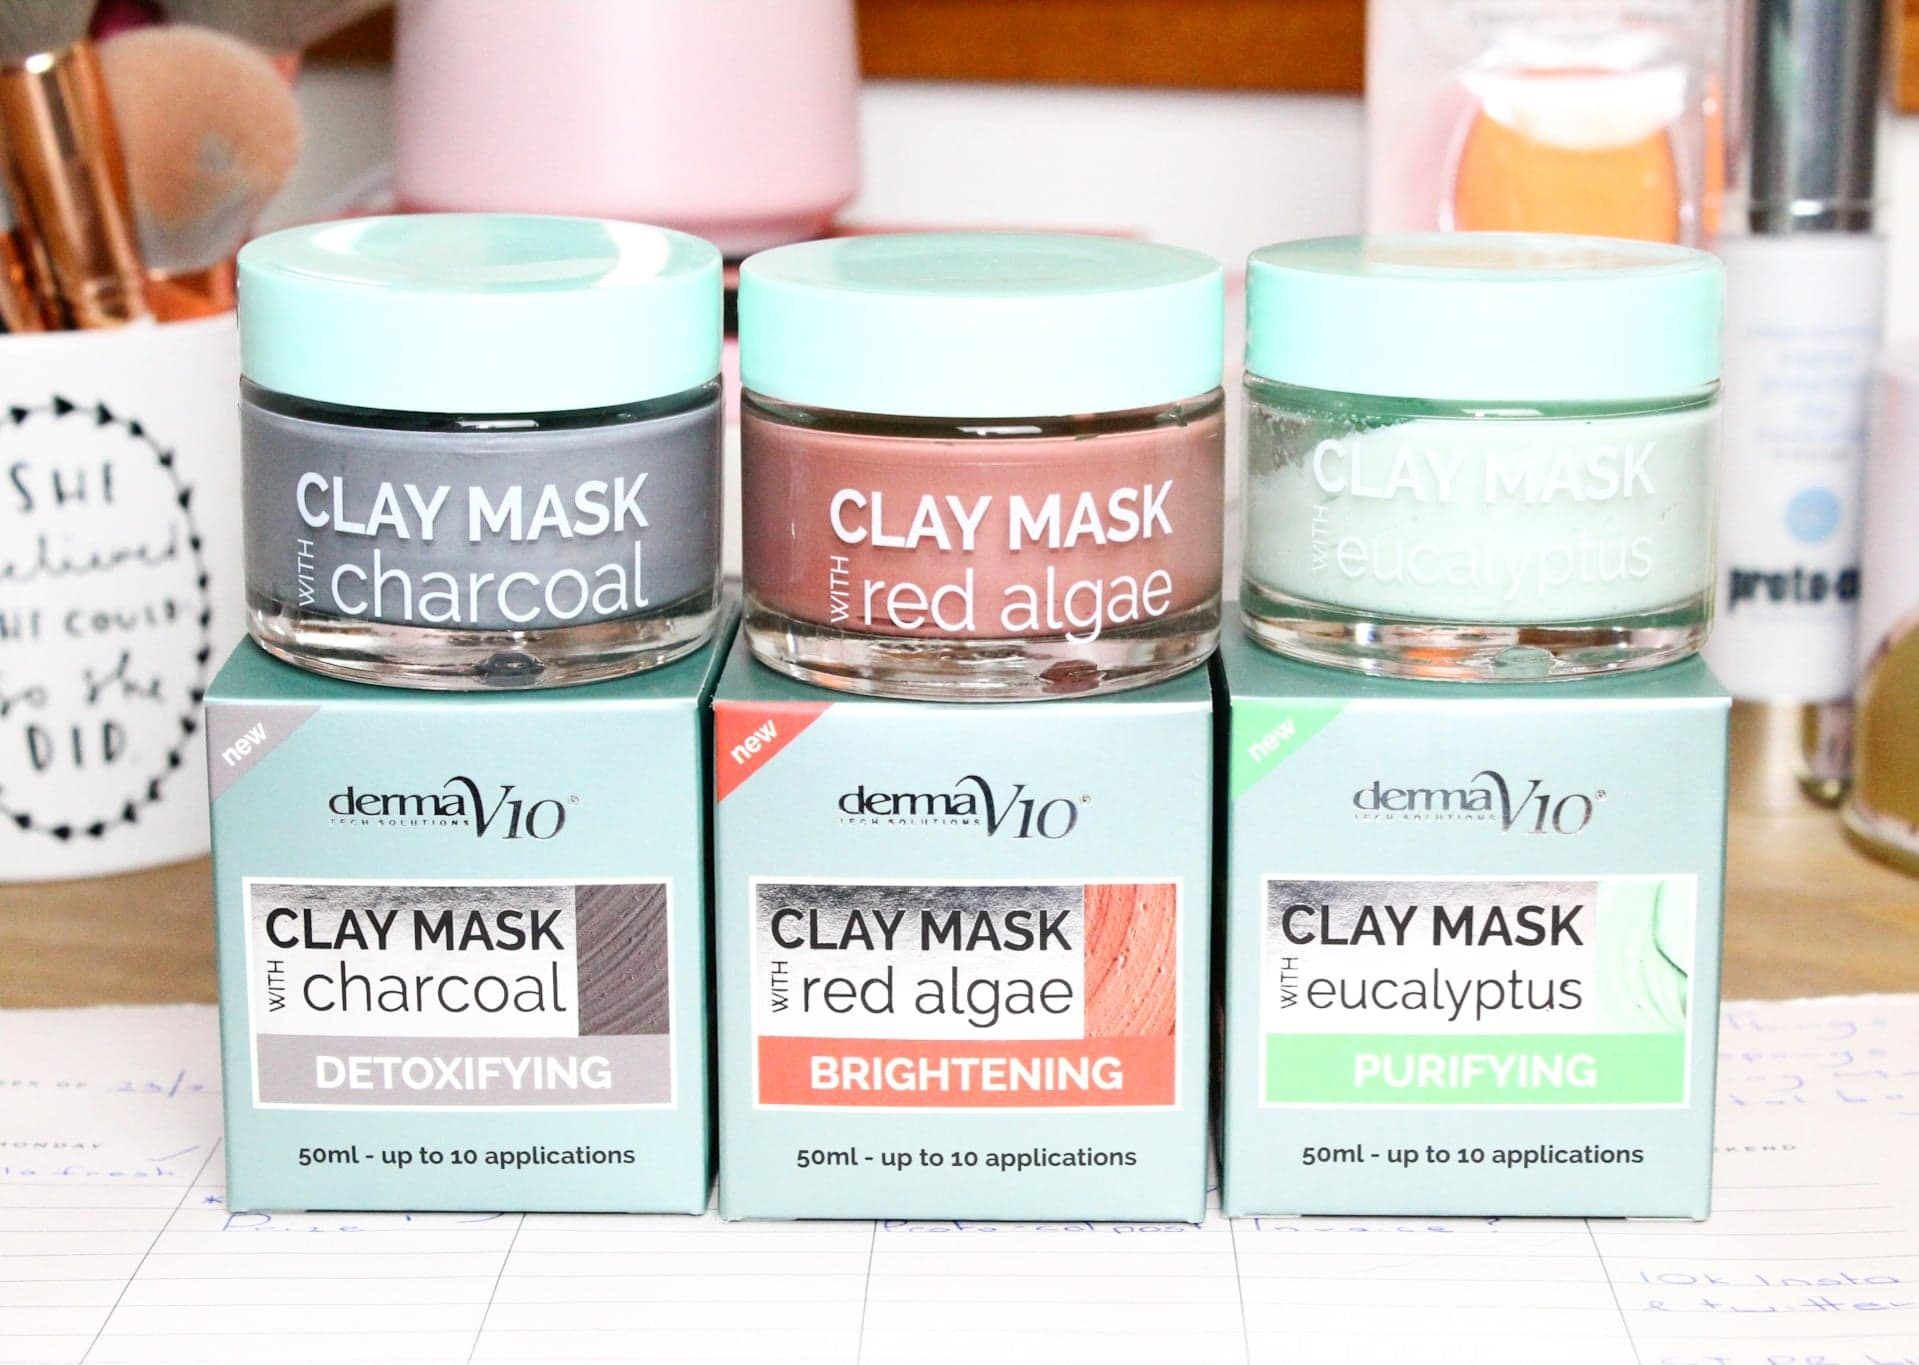 Derma V10 Clay Mask Collection | A Face Mask for Only £1.99?!